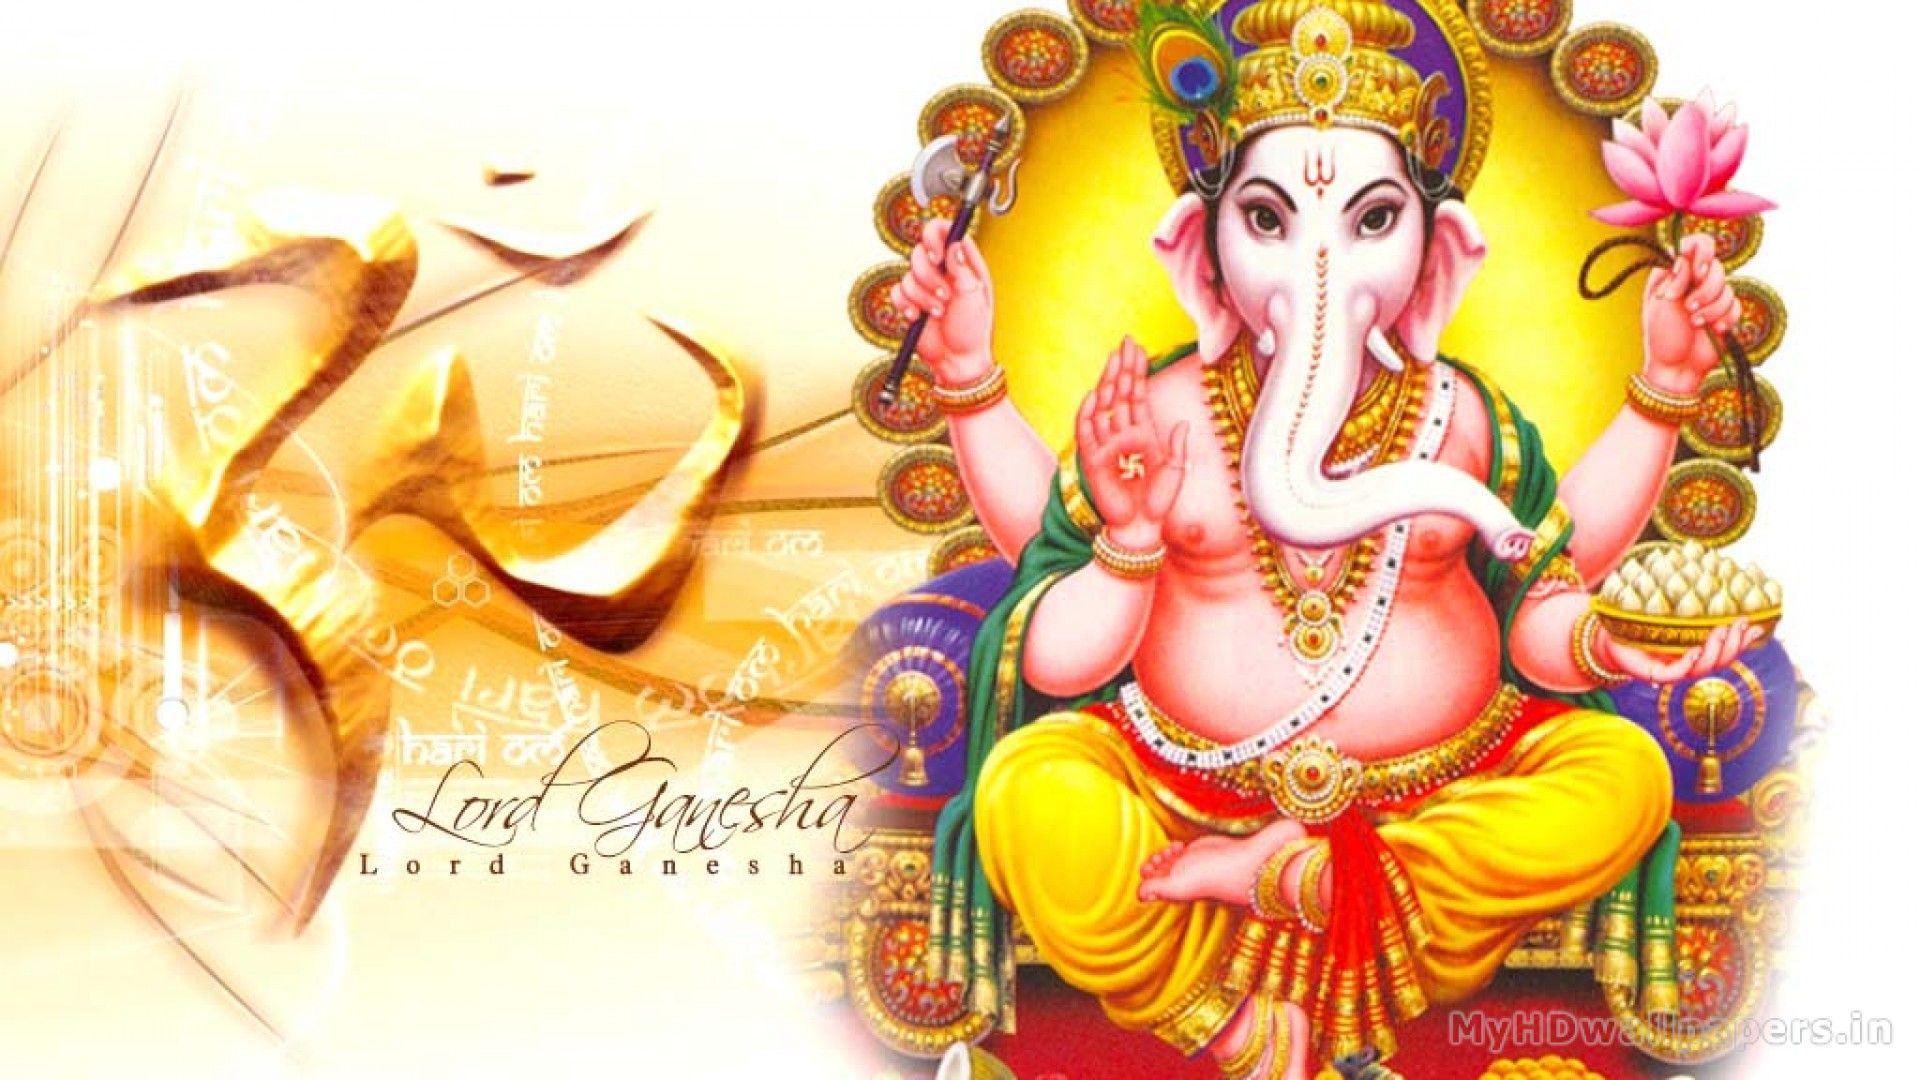 click here to download in hd format ganesha desktop wallpaper full size http